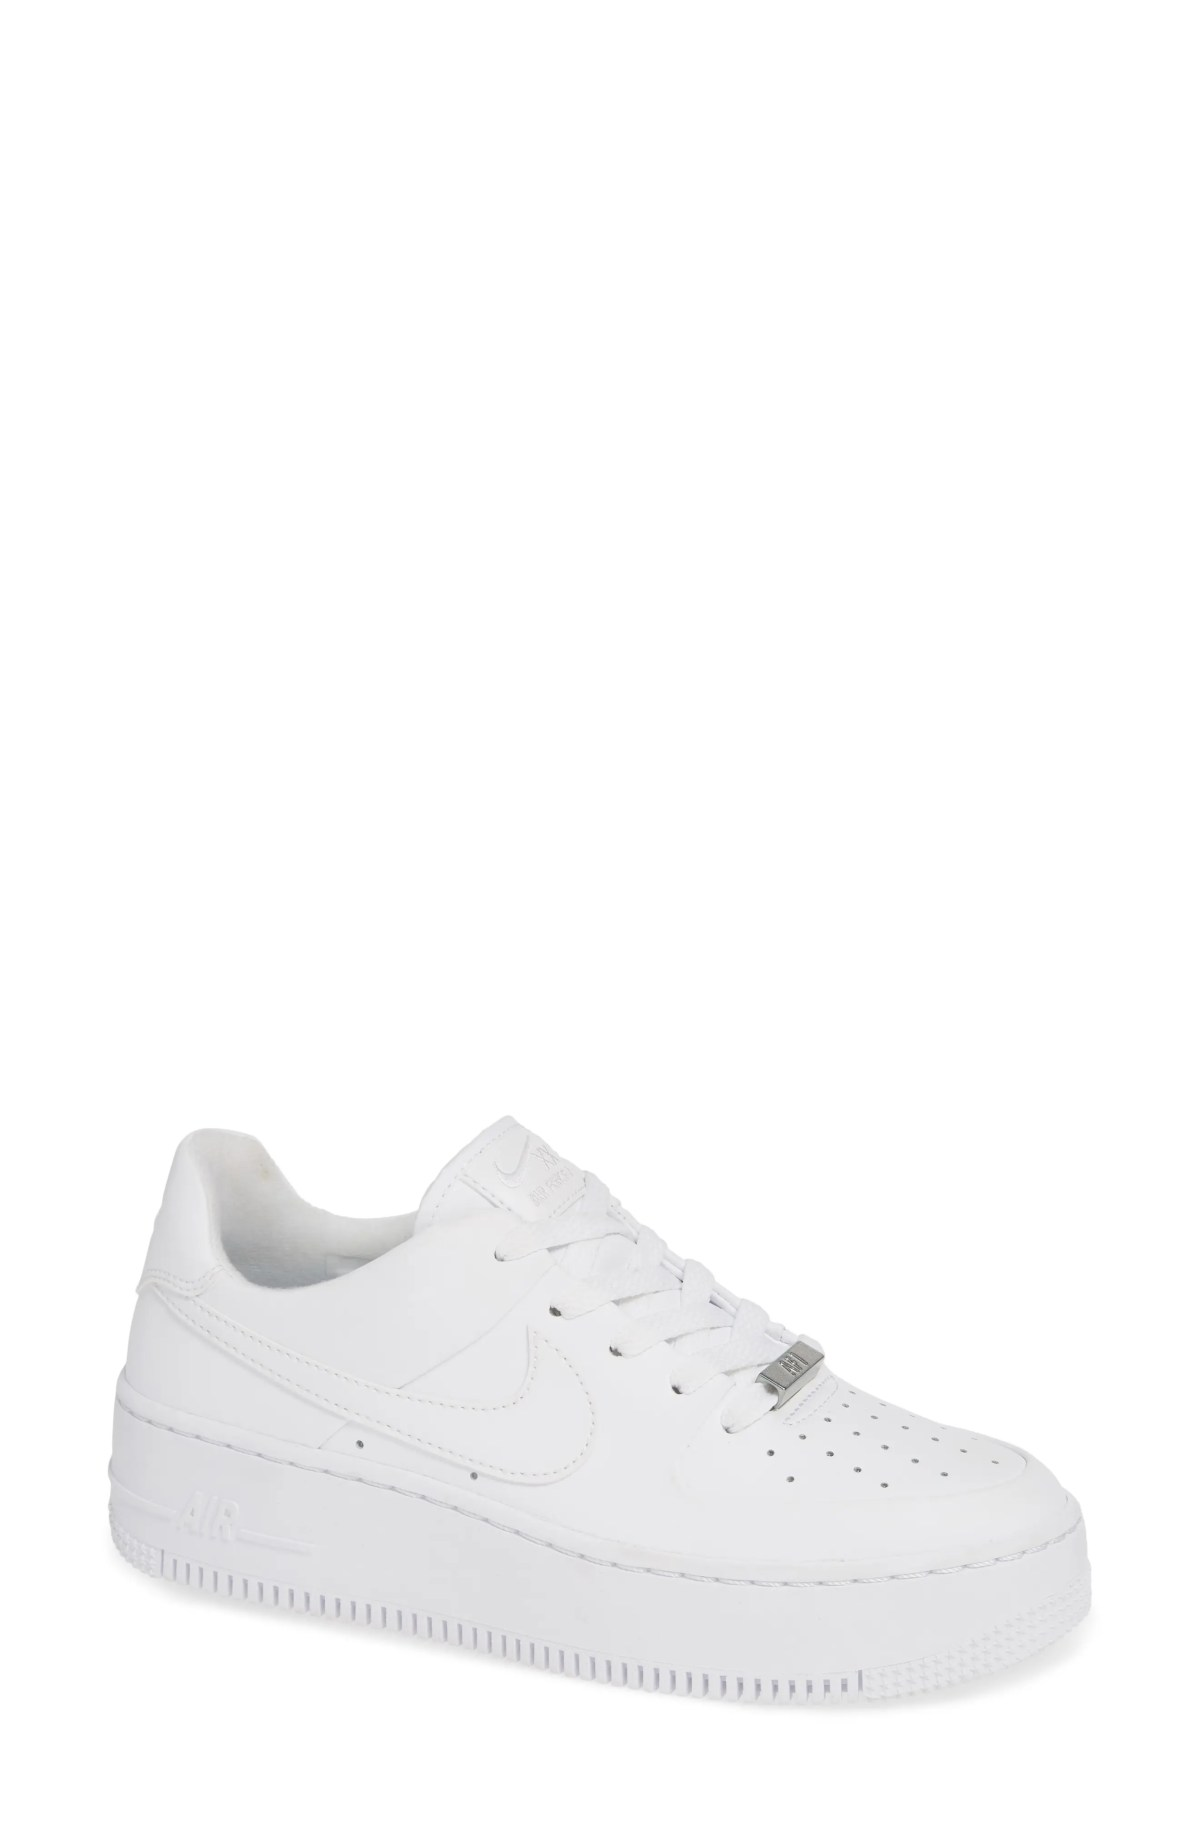 NIKE Air Force 1 Sage Low Platform Sneaker, Main, color, WHITE/ WHITE/ WHITE